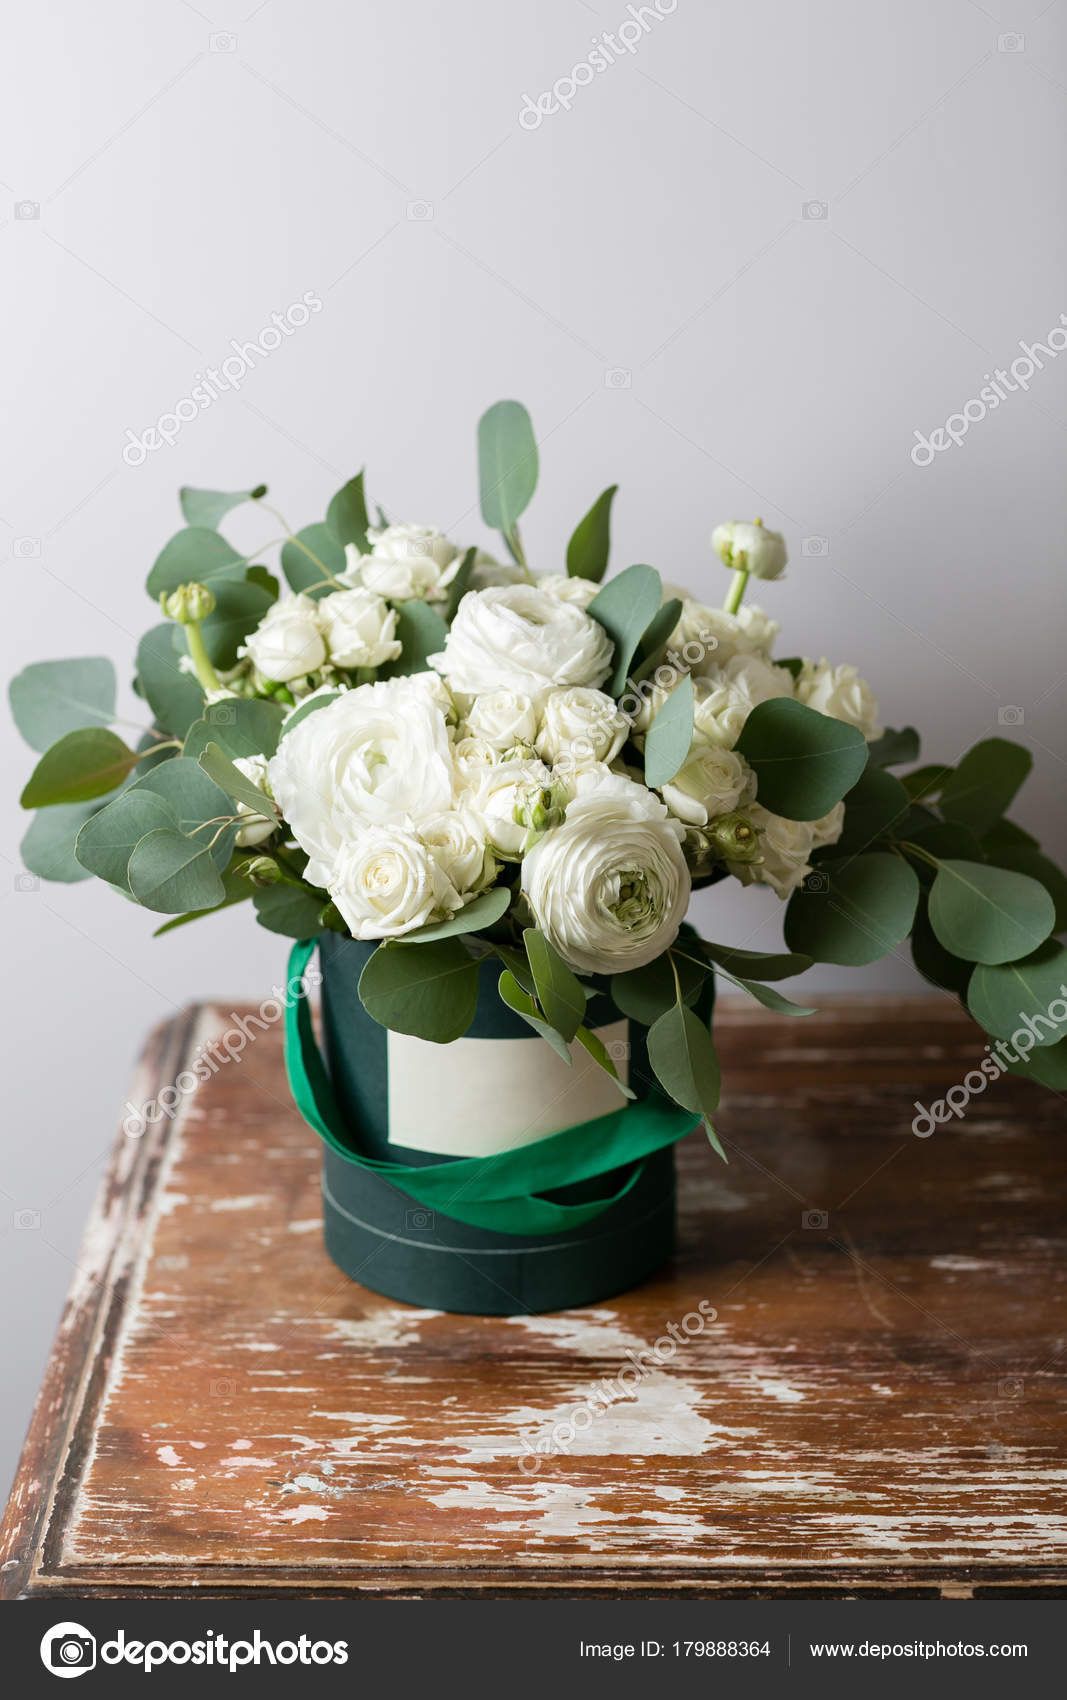 Mixed White Flowers Bouquet Of Spray Roses And Ranunculuses In A